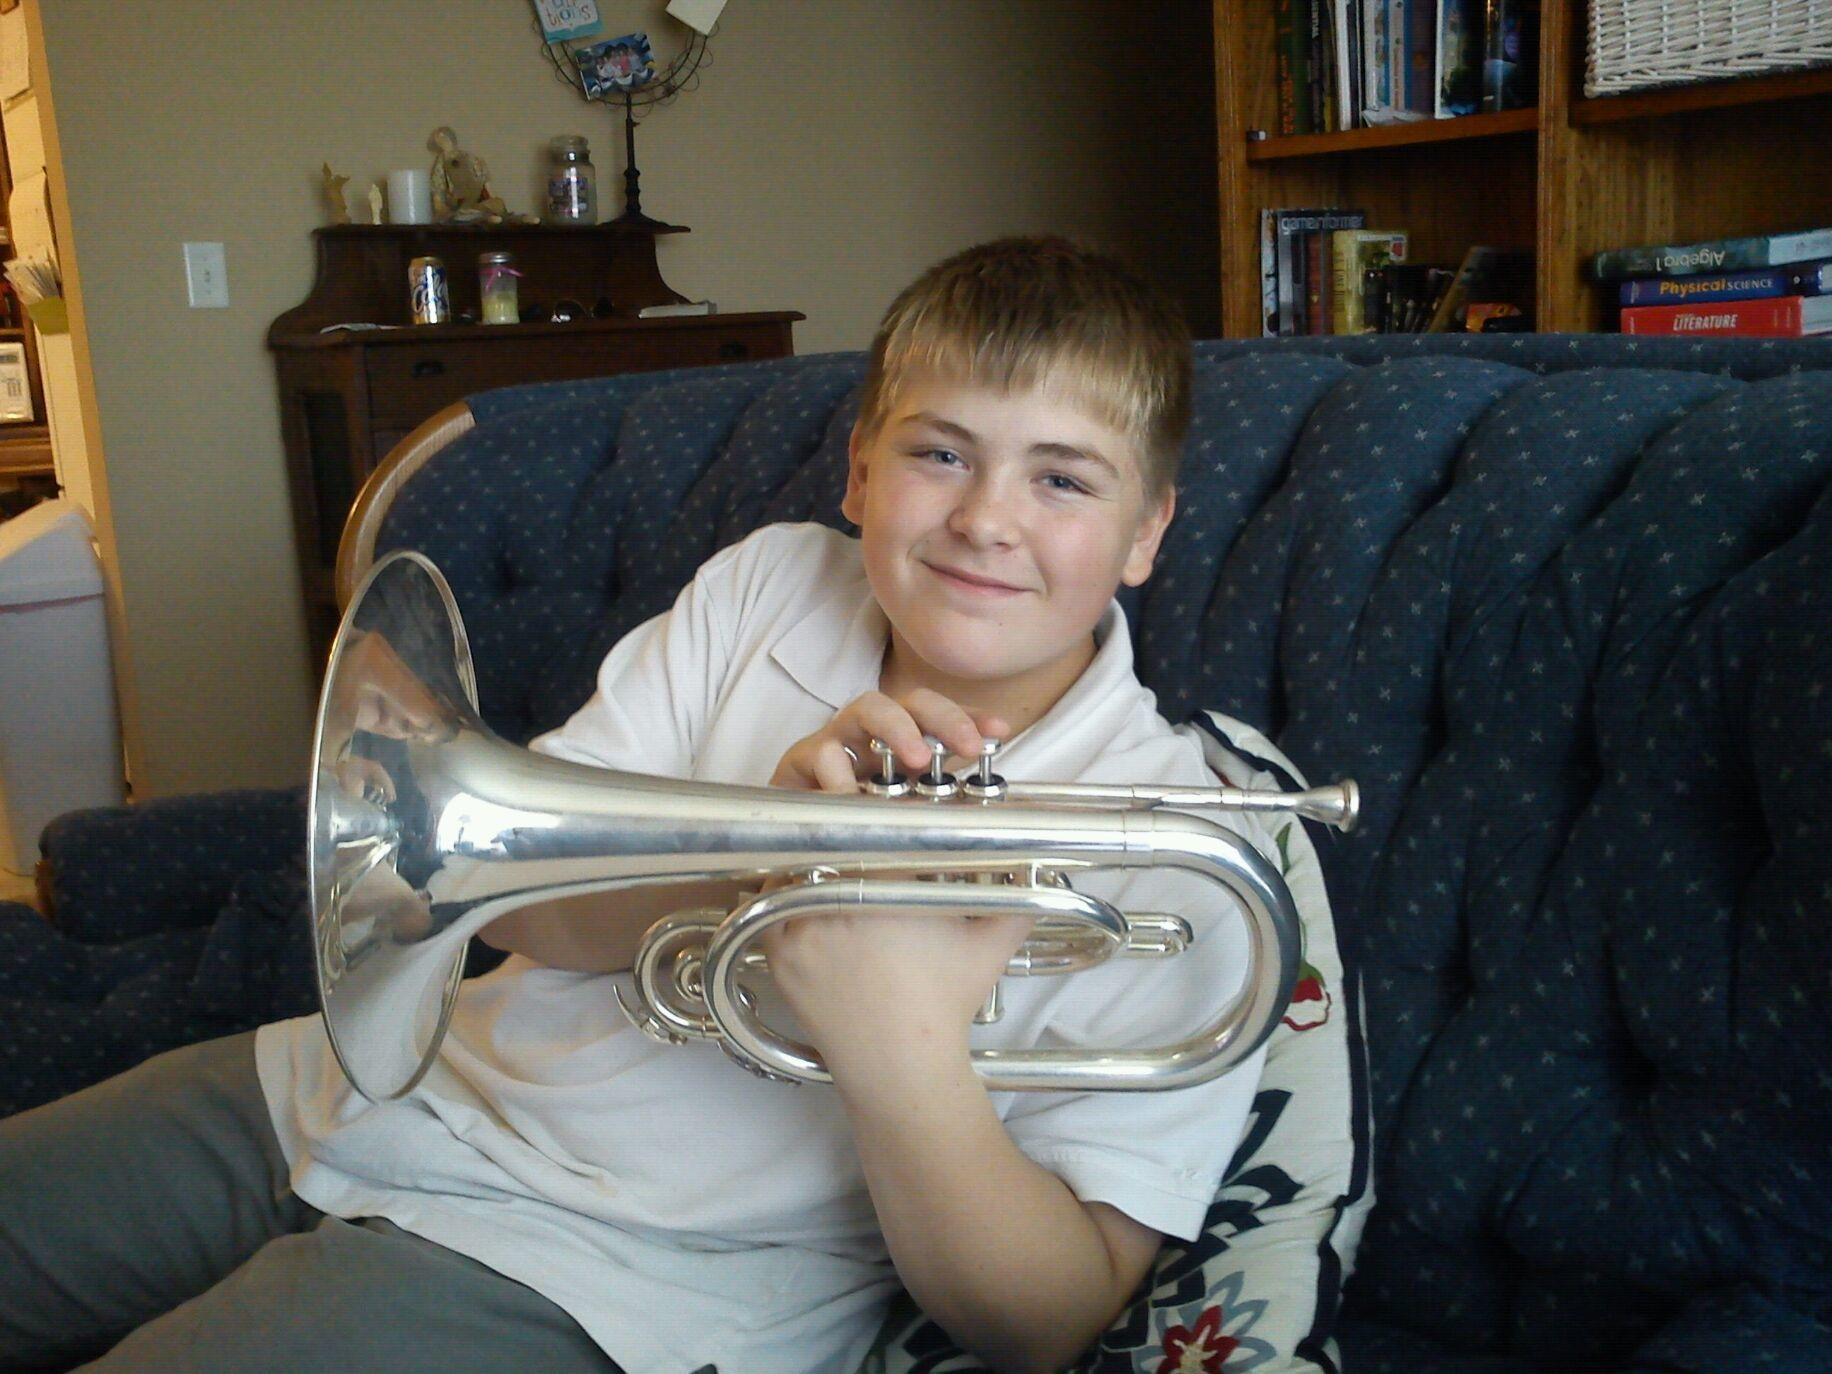 Zavier us having an identity crisis. He srrns to think he is a french horn player.